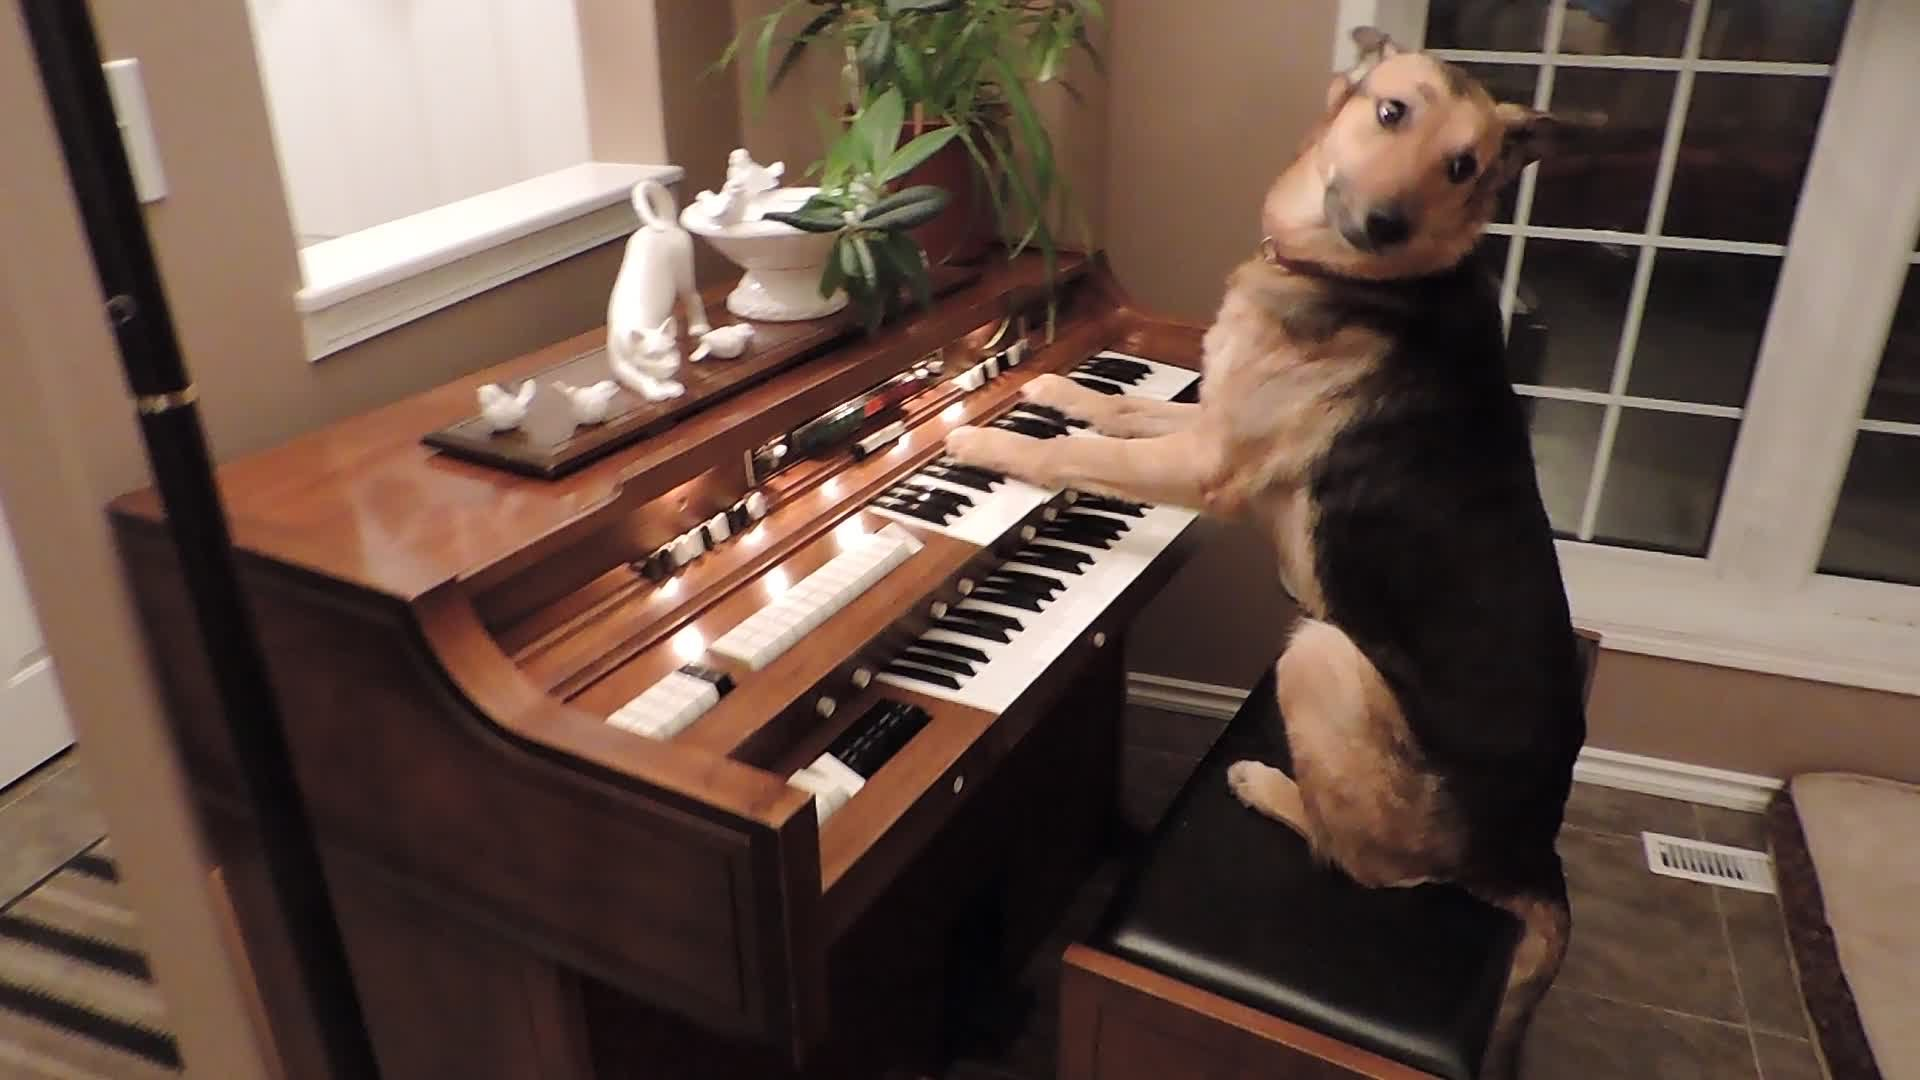 This Piano Playing German Shepherd Will Melt Your Heart